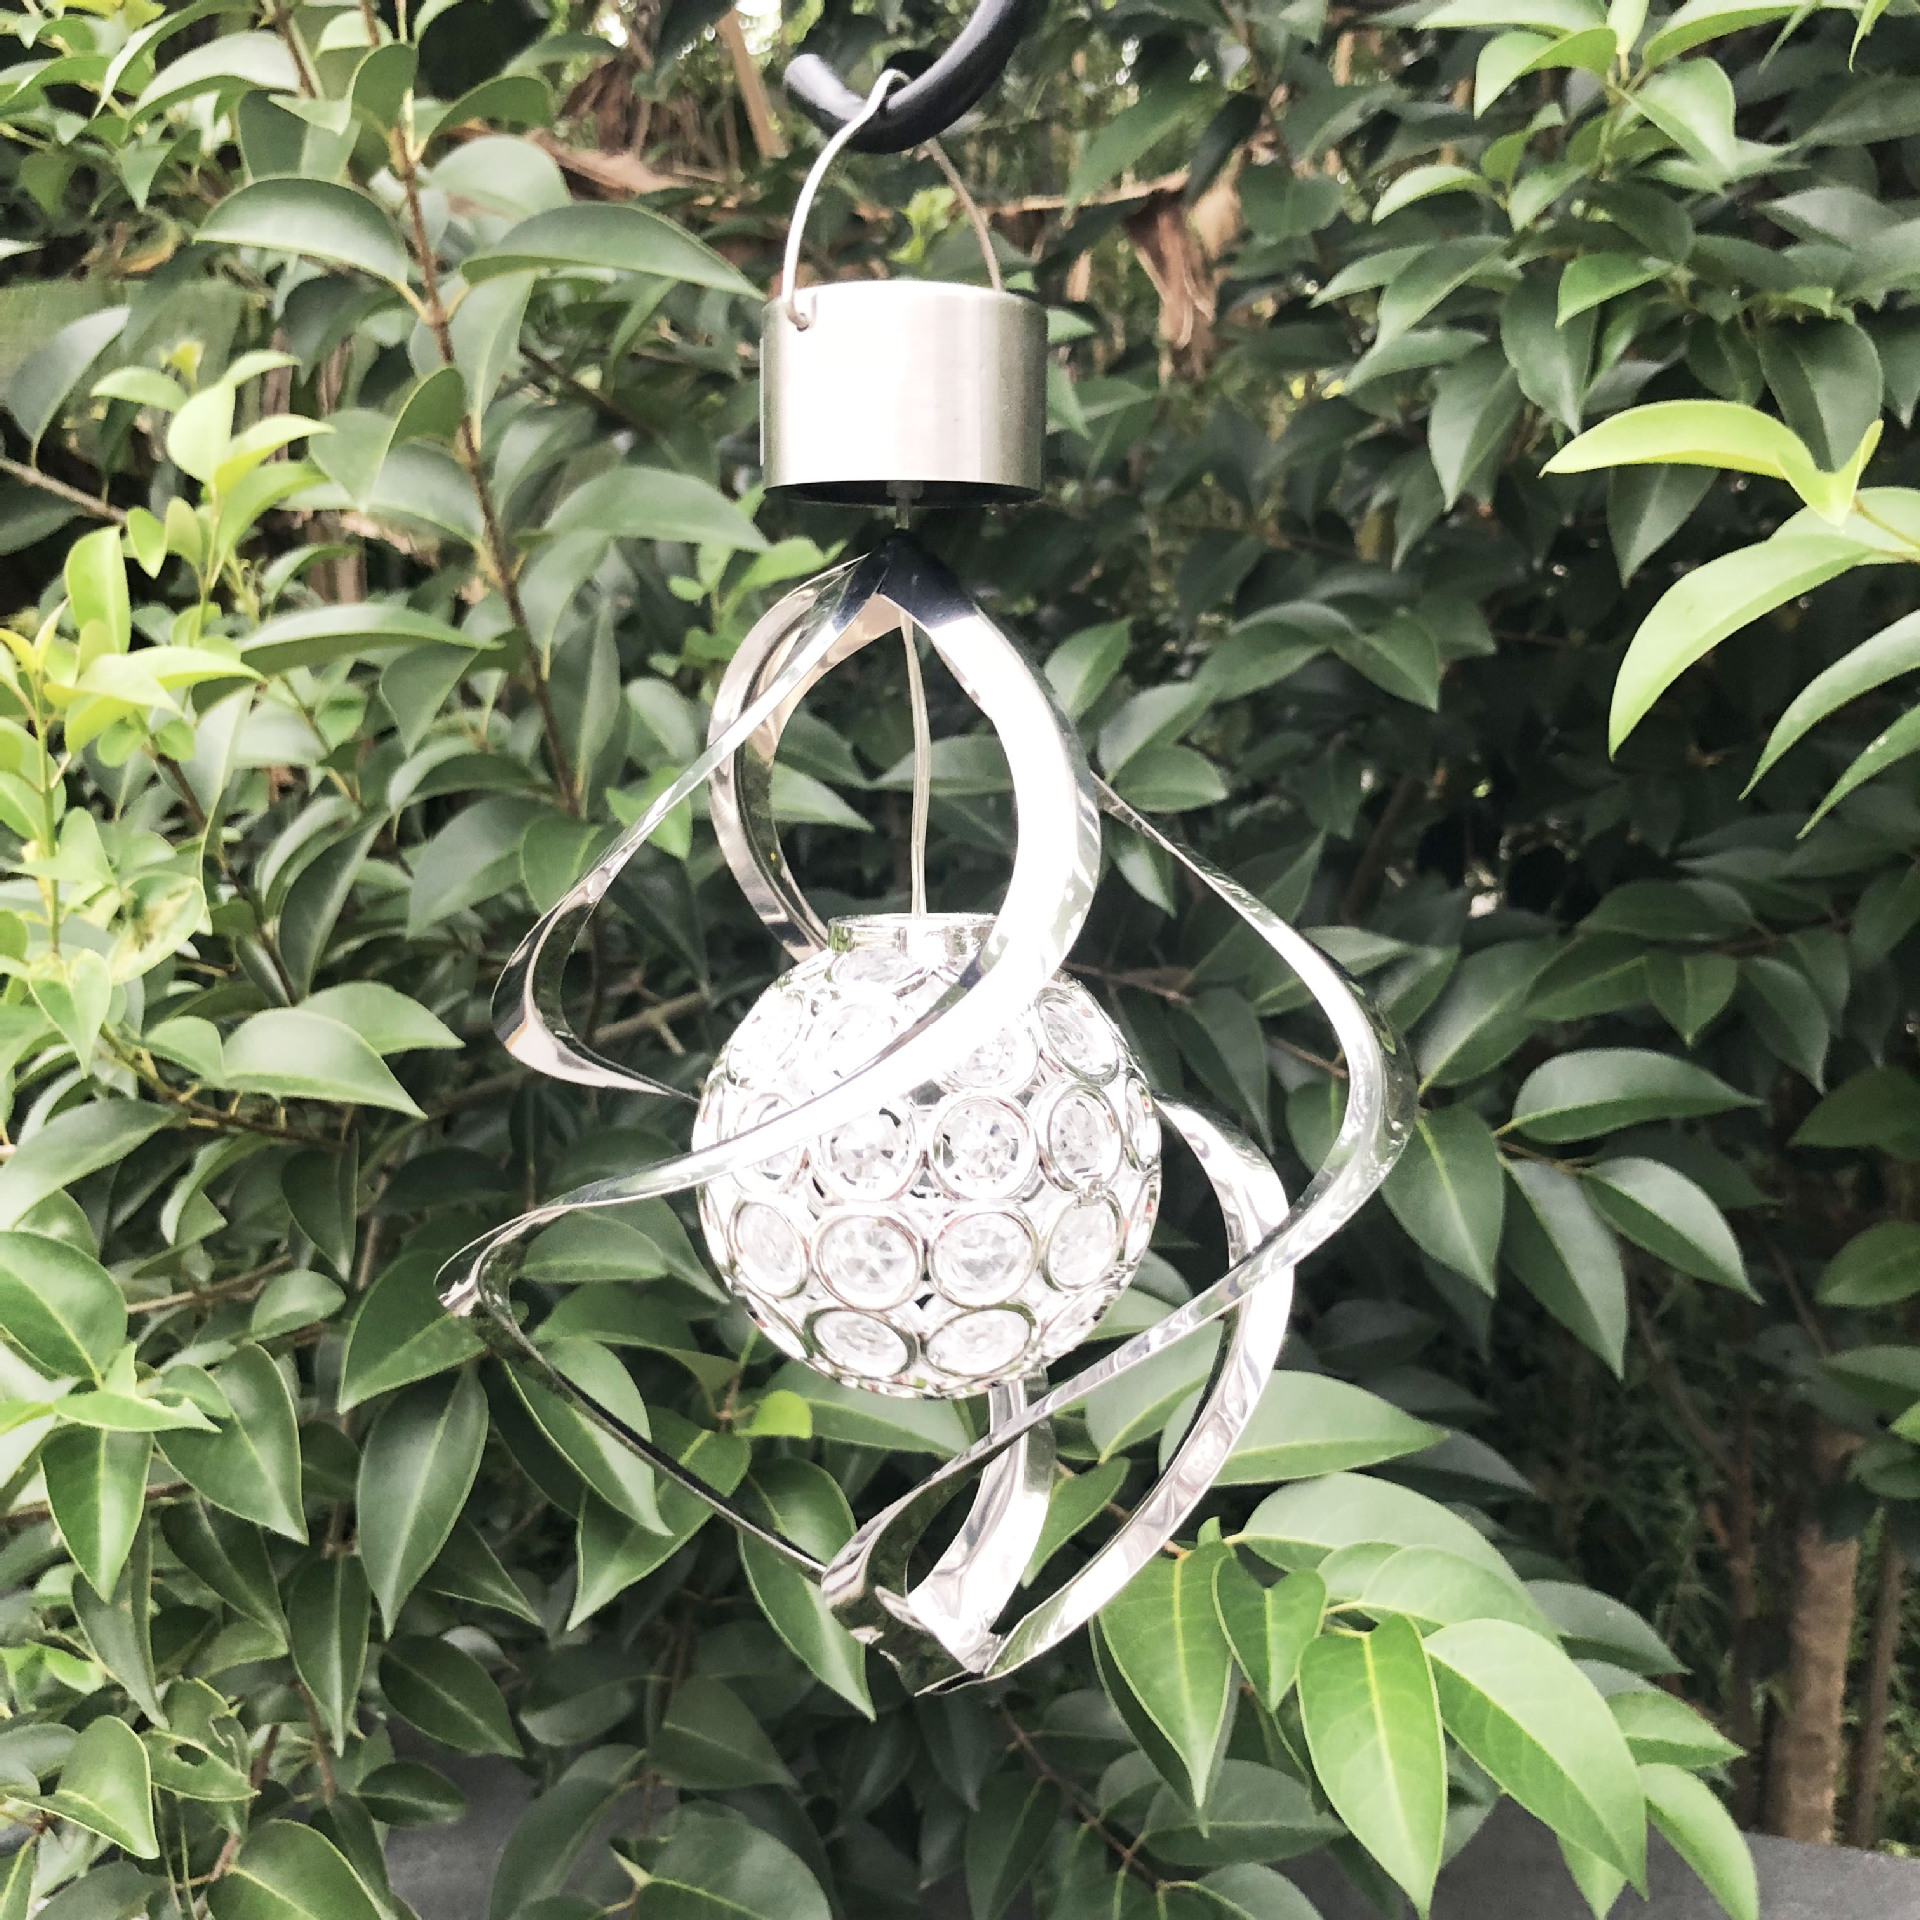 LED Stainless Steel Solar Powered Hollow Ball Wind Chime Lamp for Garden Yard Decor